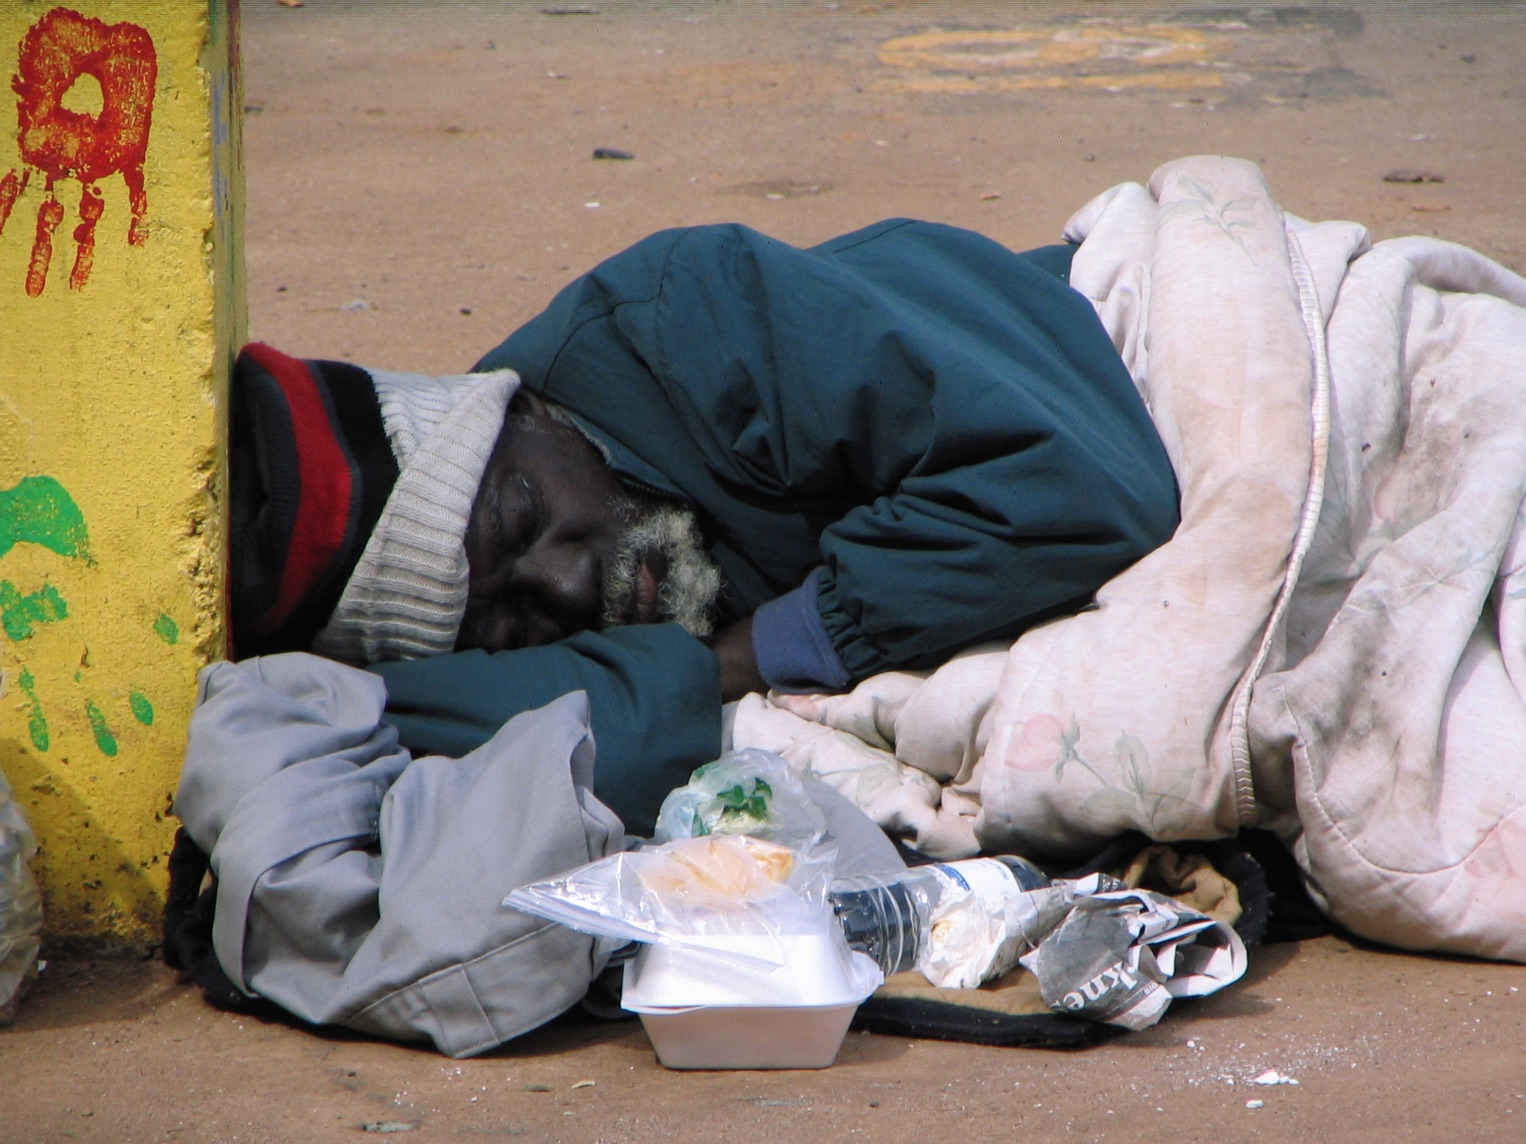 Homeless in Atlanta, Metro Atlanta Task Force for the Homeless